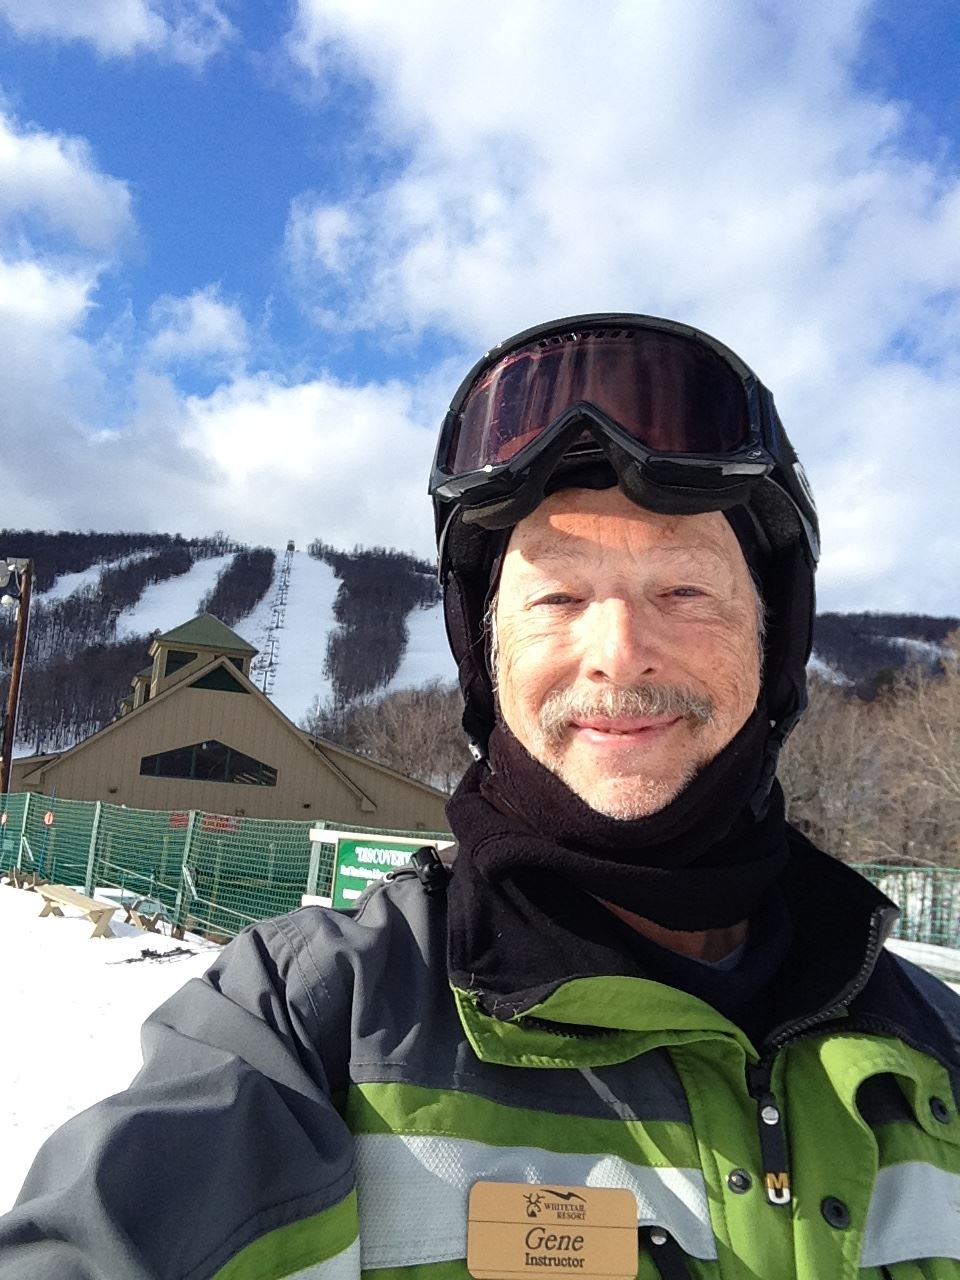 Gene is one of our ski instructors